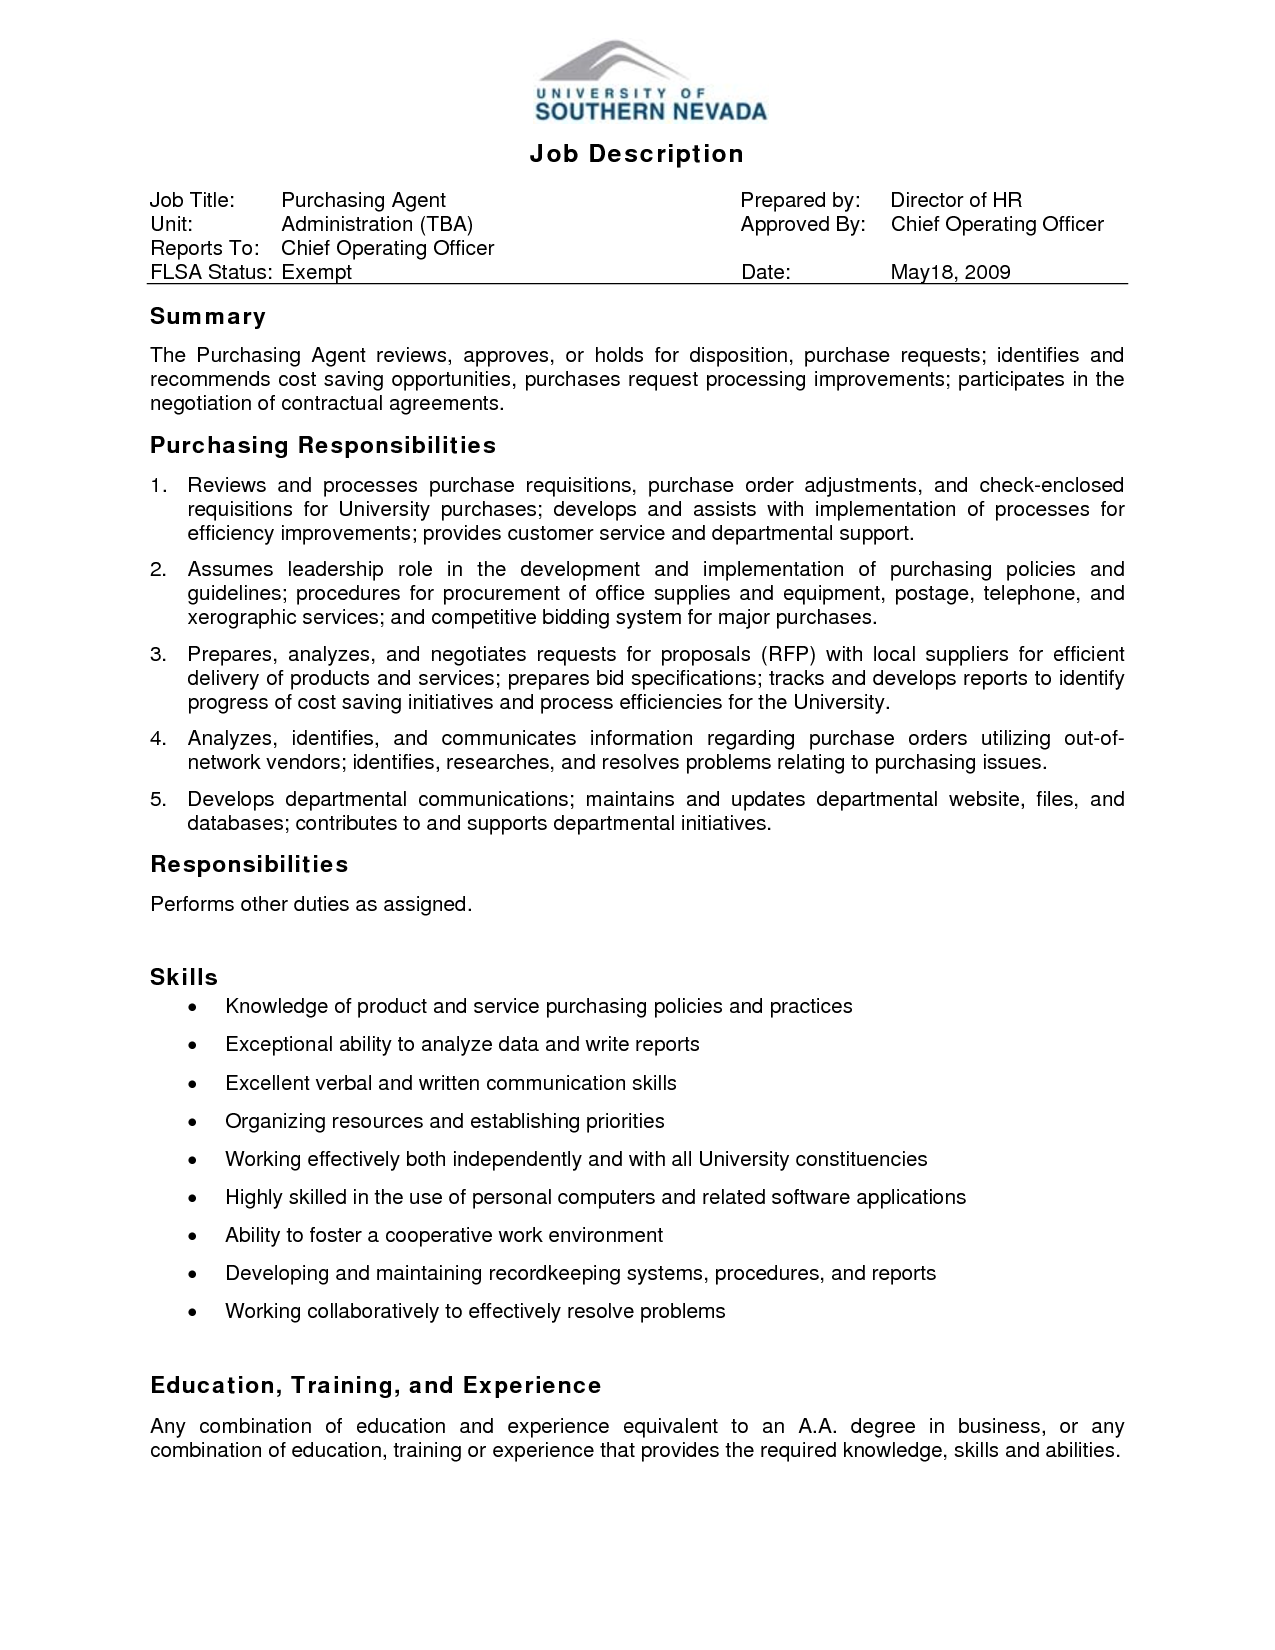 7 administrative assistant duties resume samplebusinessresume